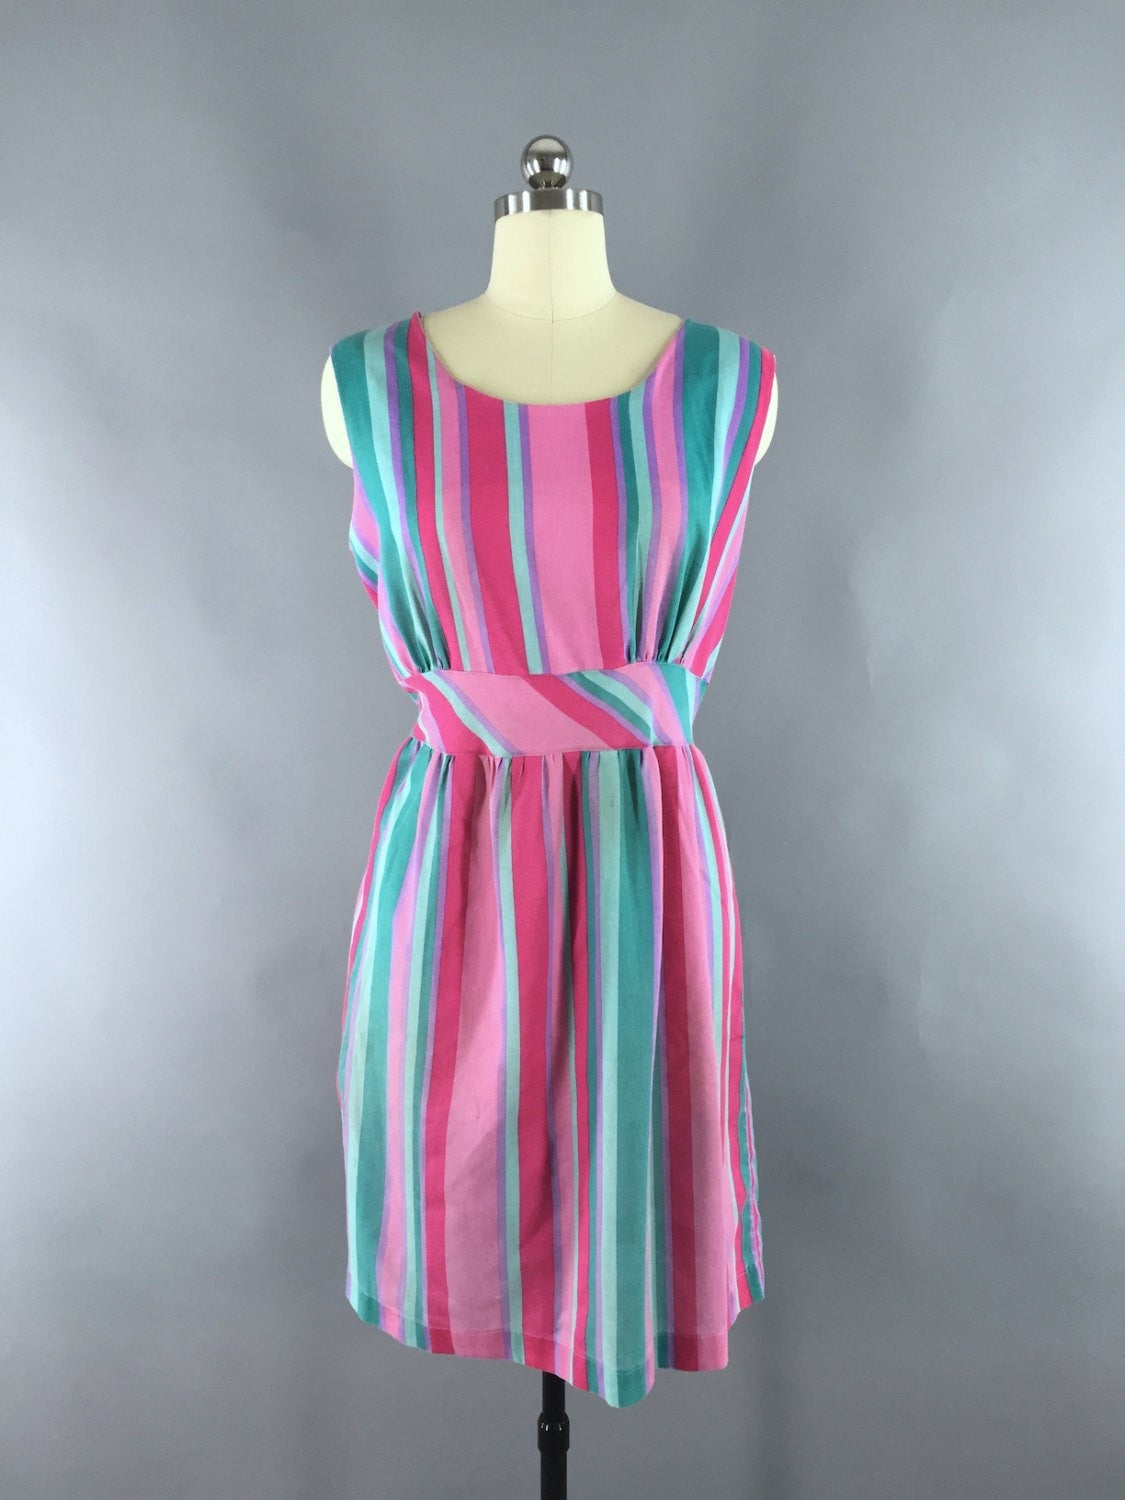 1970s Vintage Pink Striped Cotton Sundress Dress ThisBlueBIrd